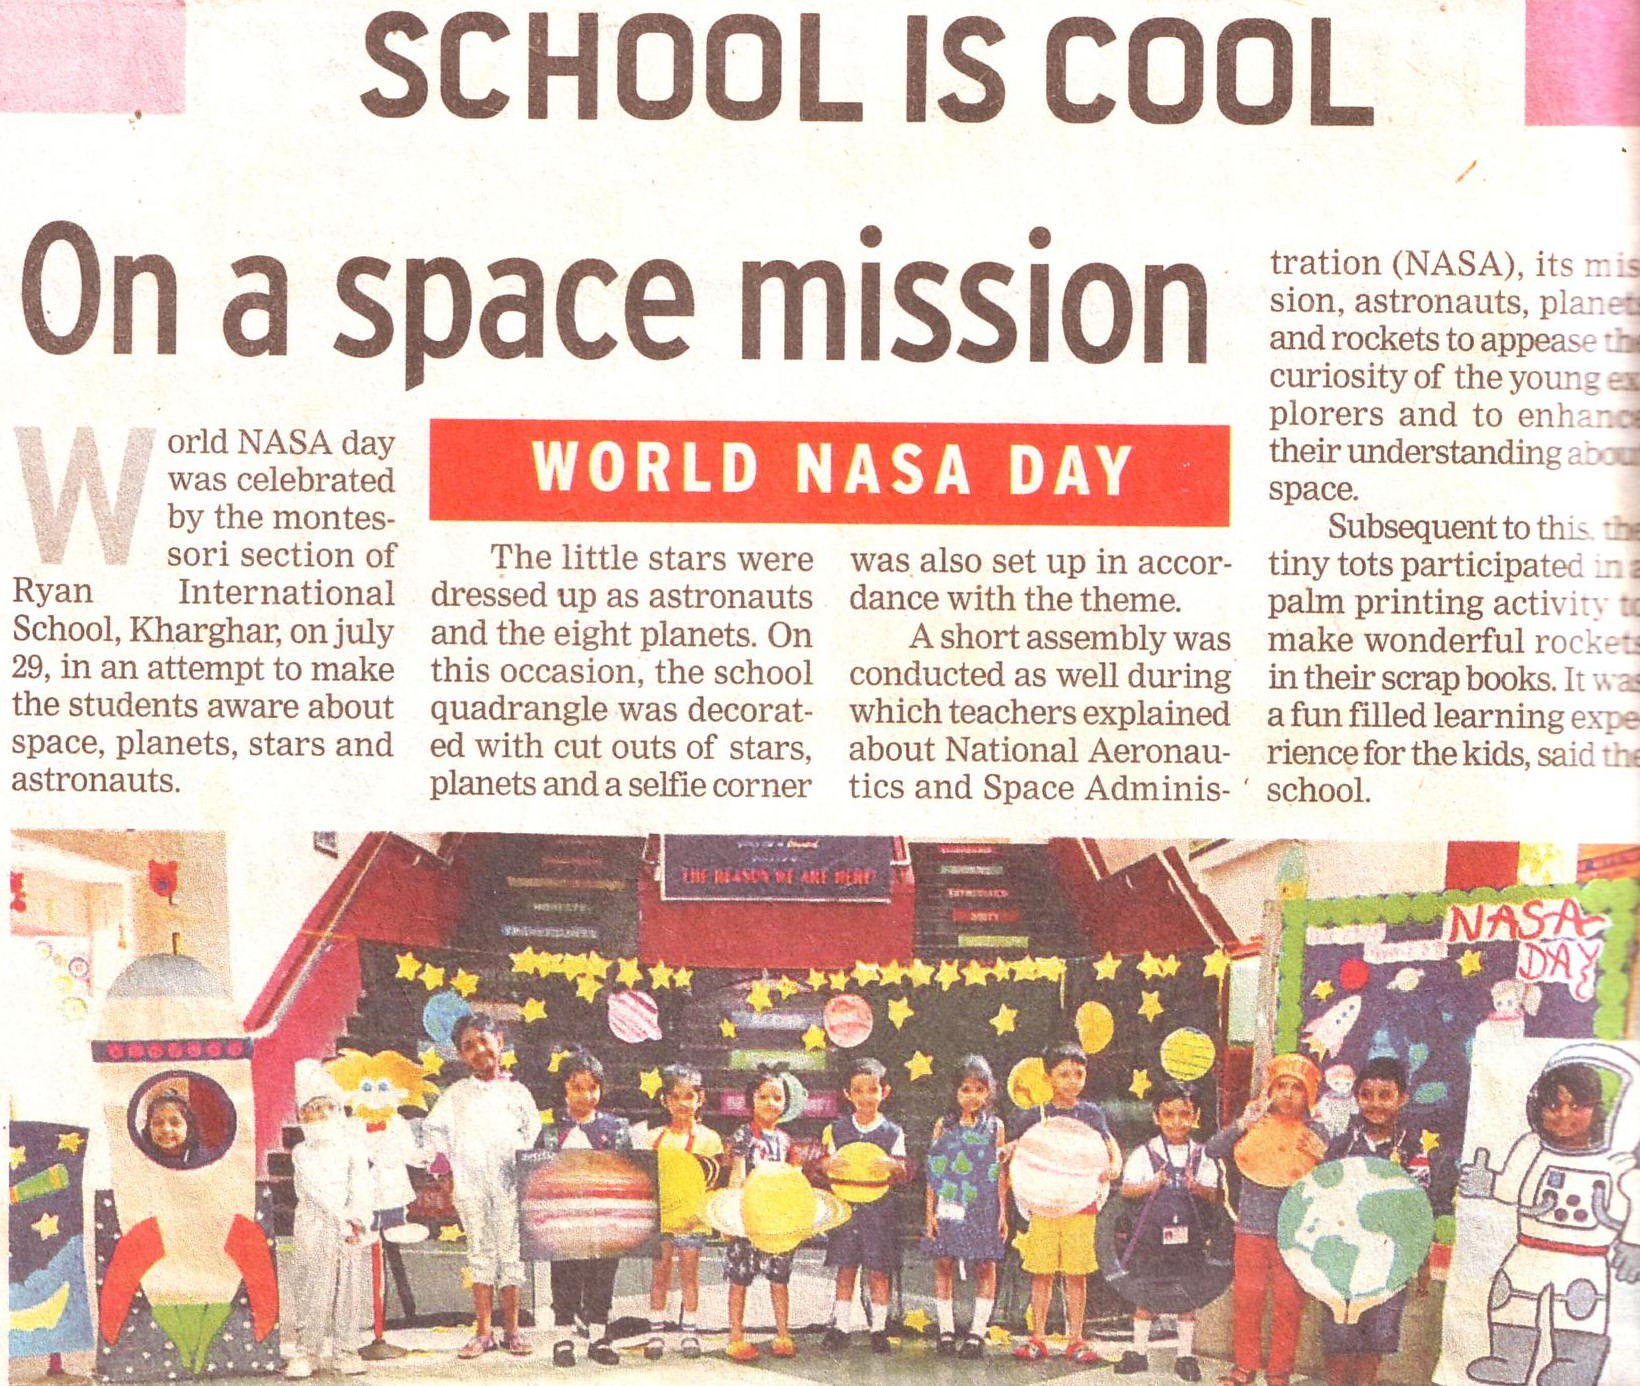 School is cool, on a space mission was mentioned in Times NIE - Ryan International School, Kharghar - Ryan Group